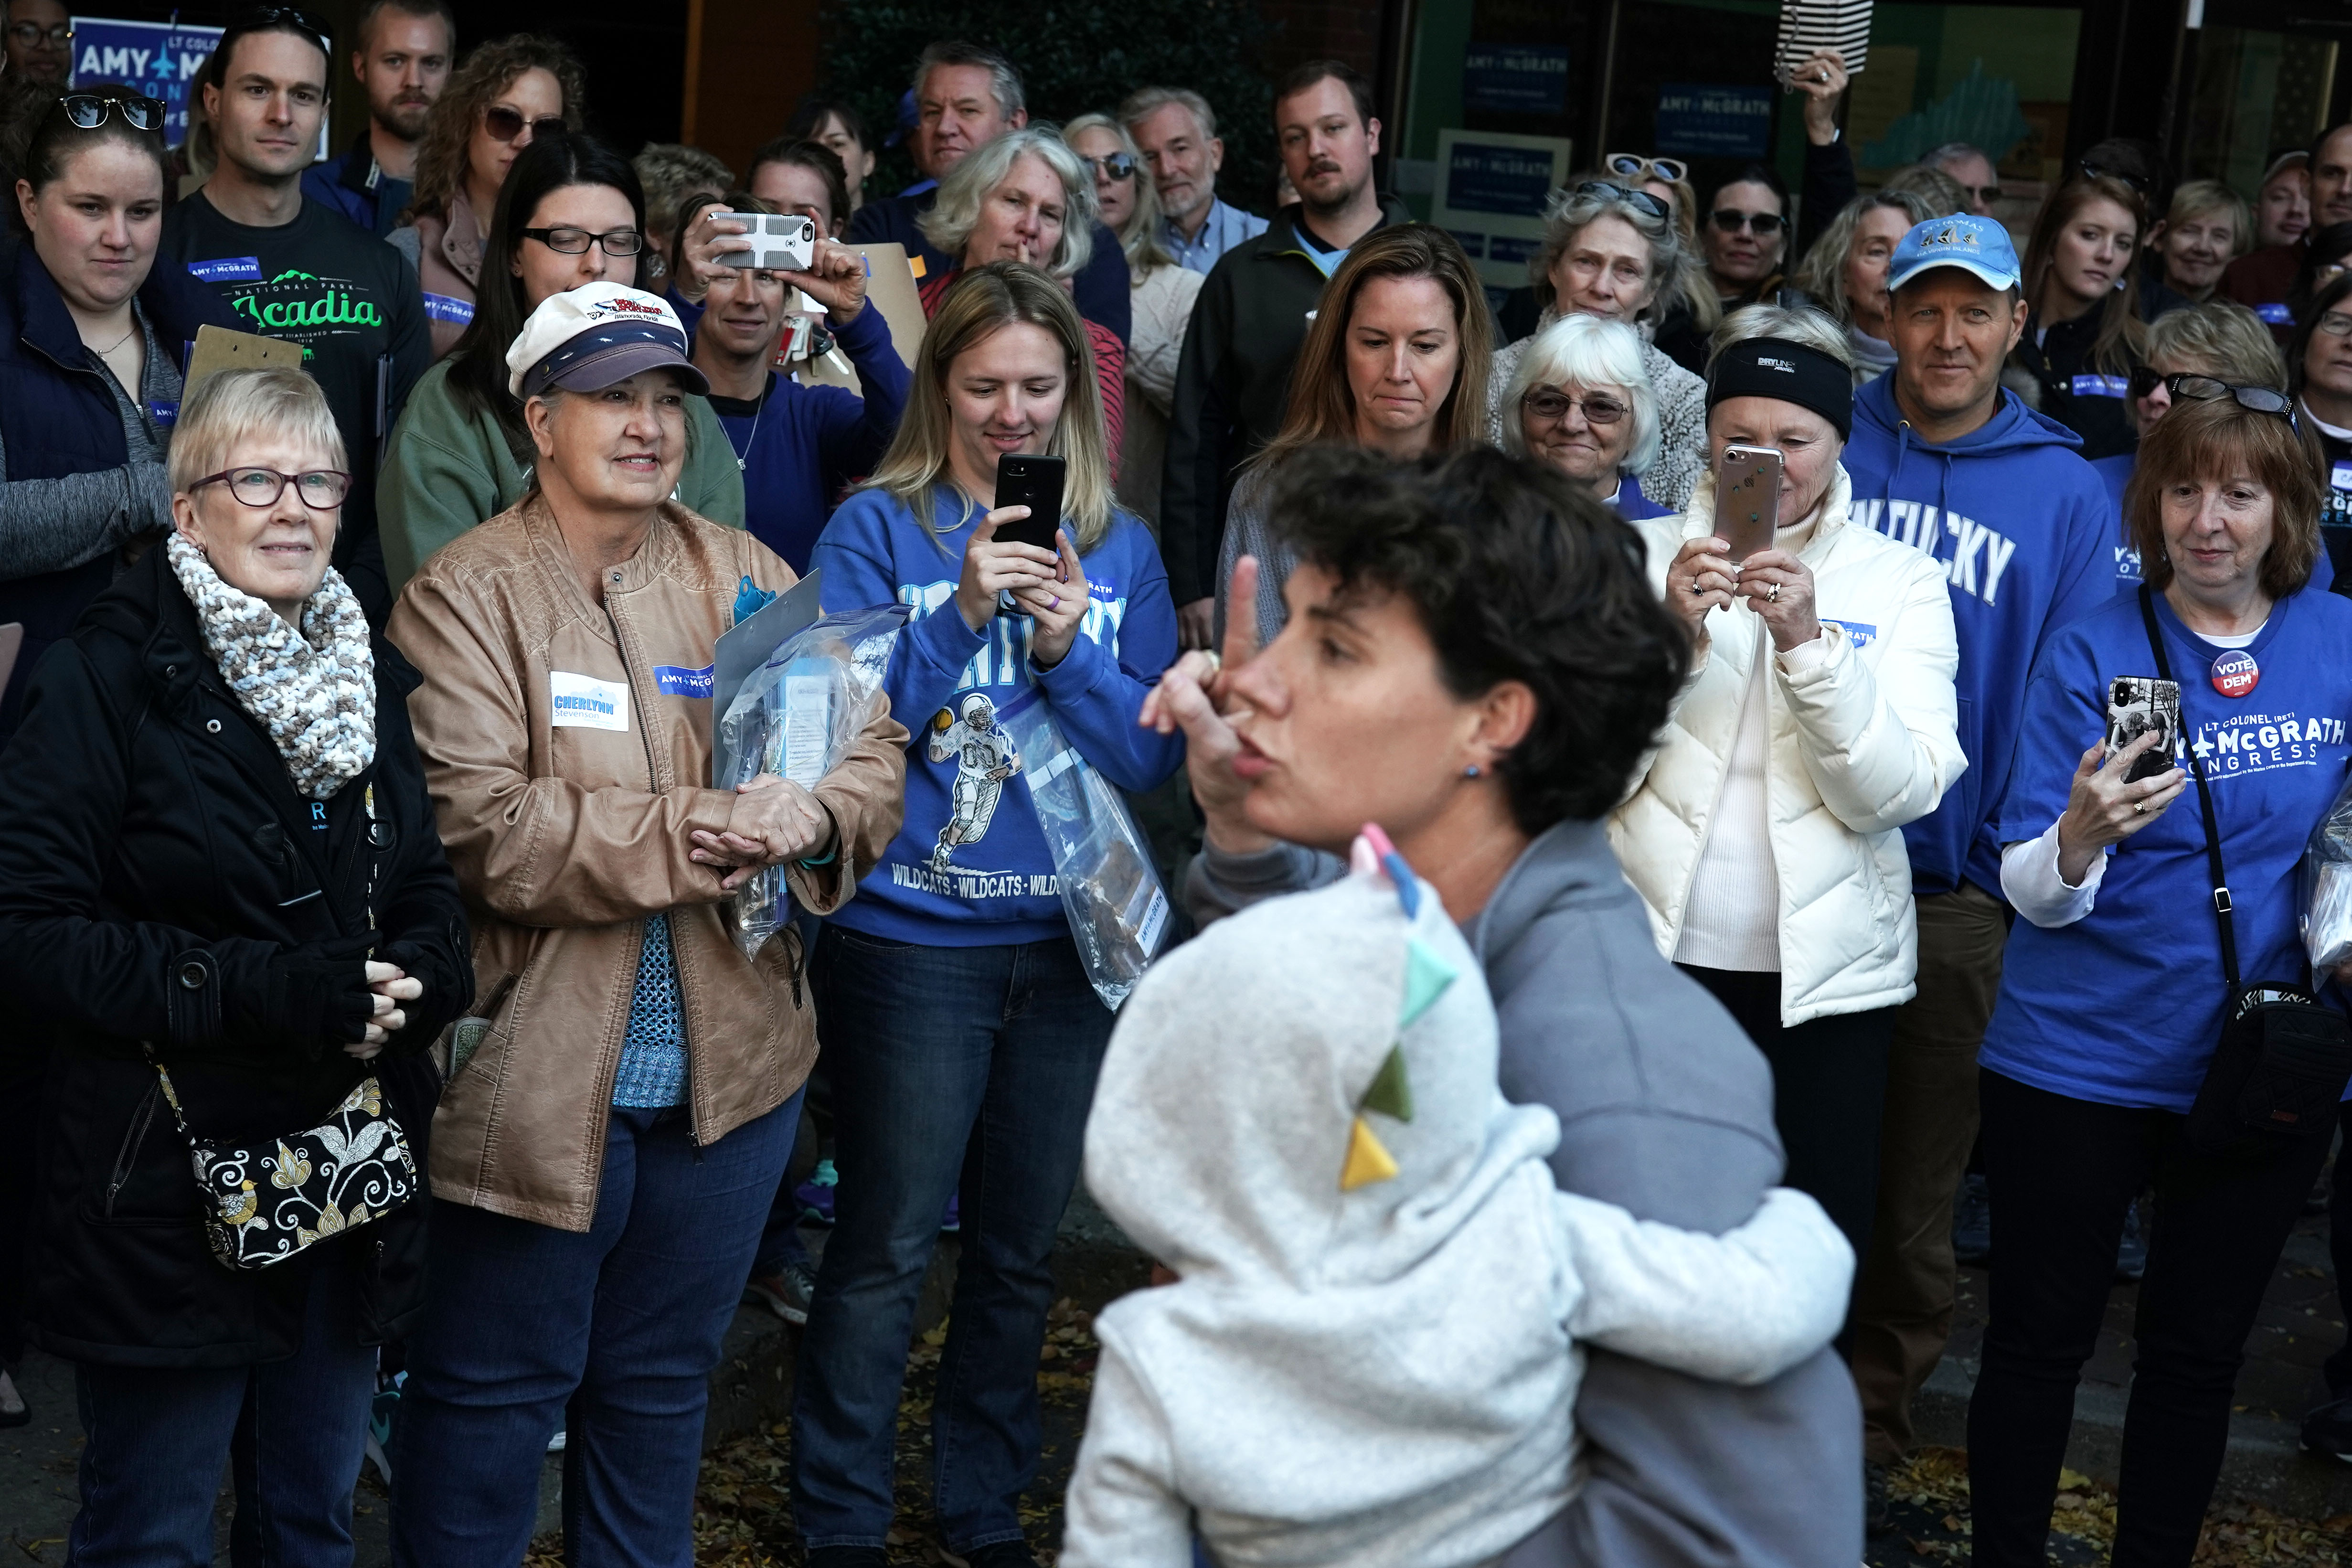 Democratic U.S. House of Representatives candidate for Kentucky's Sixth Congressional District Amy McGrath speaks to campaign volunteers during a canvass launch November 3, 2018 in Lexington, Kentucky. (Photo by Alex Wong/Getty Images)